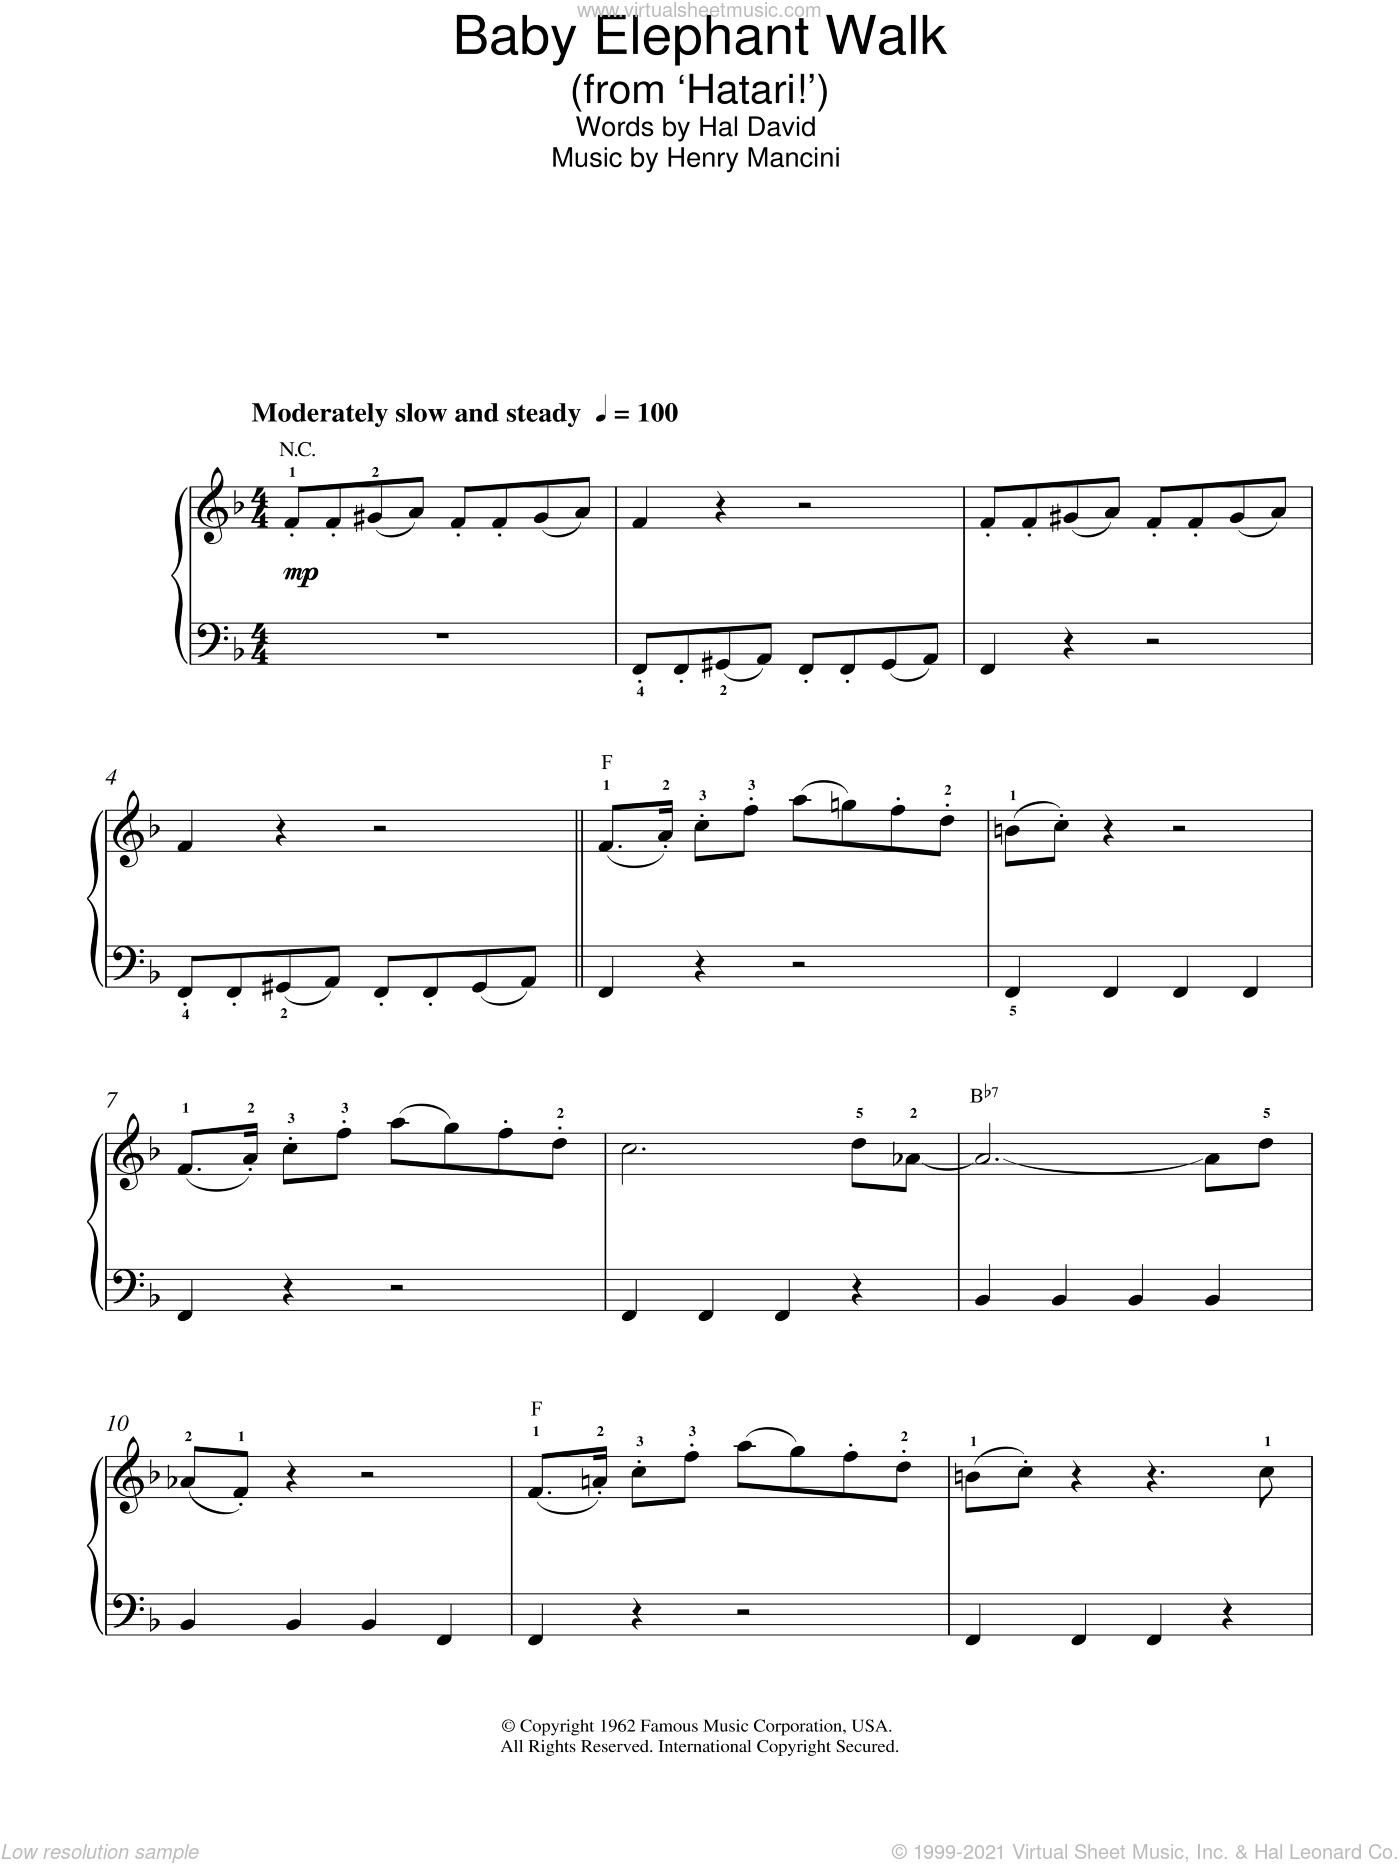 Baby Elephant Walk, (easy) sheet music for piano solo by Henry Mancini, easy skill level